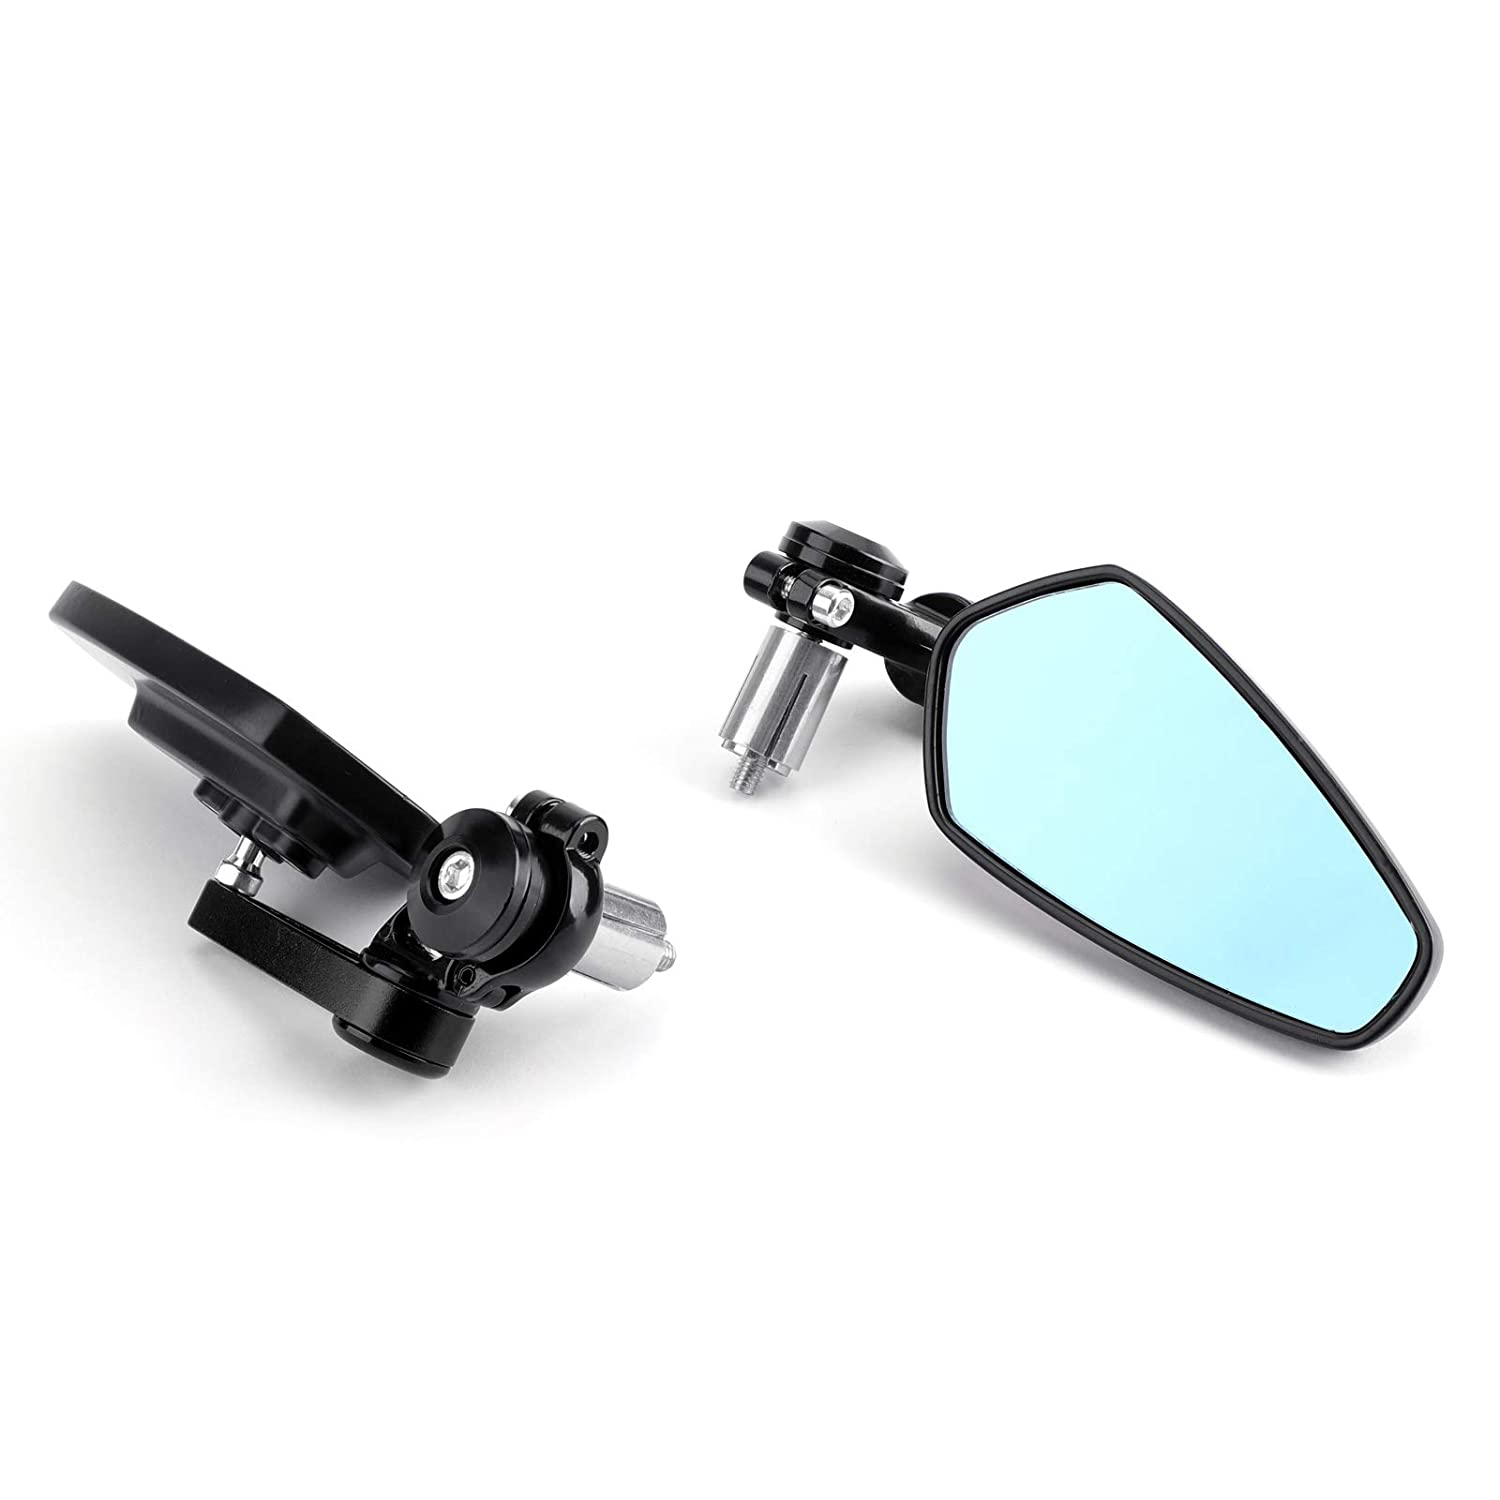 Gold Areyourshop Universal Motorcycle Moto 7//8 22mm Handle Bar End Rearview Side Mirrors